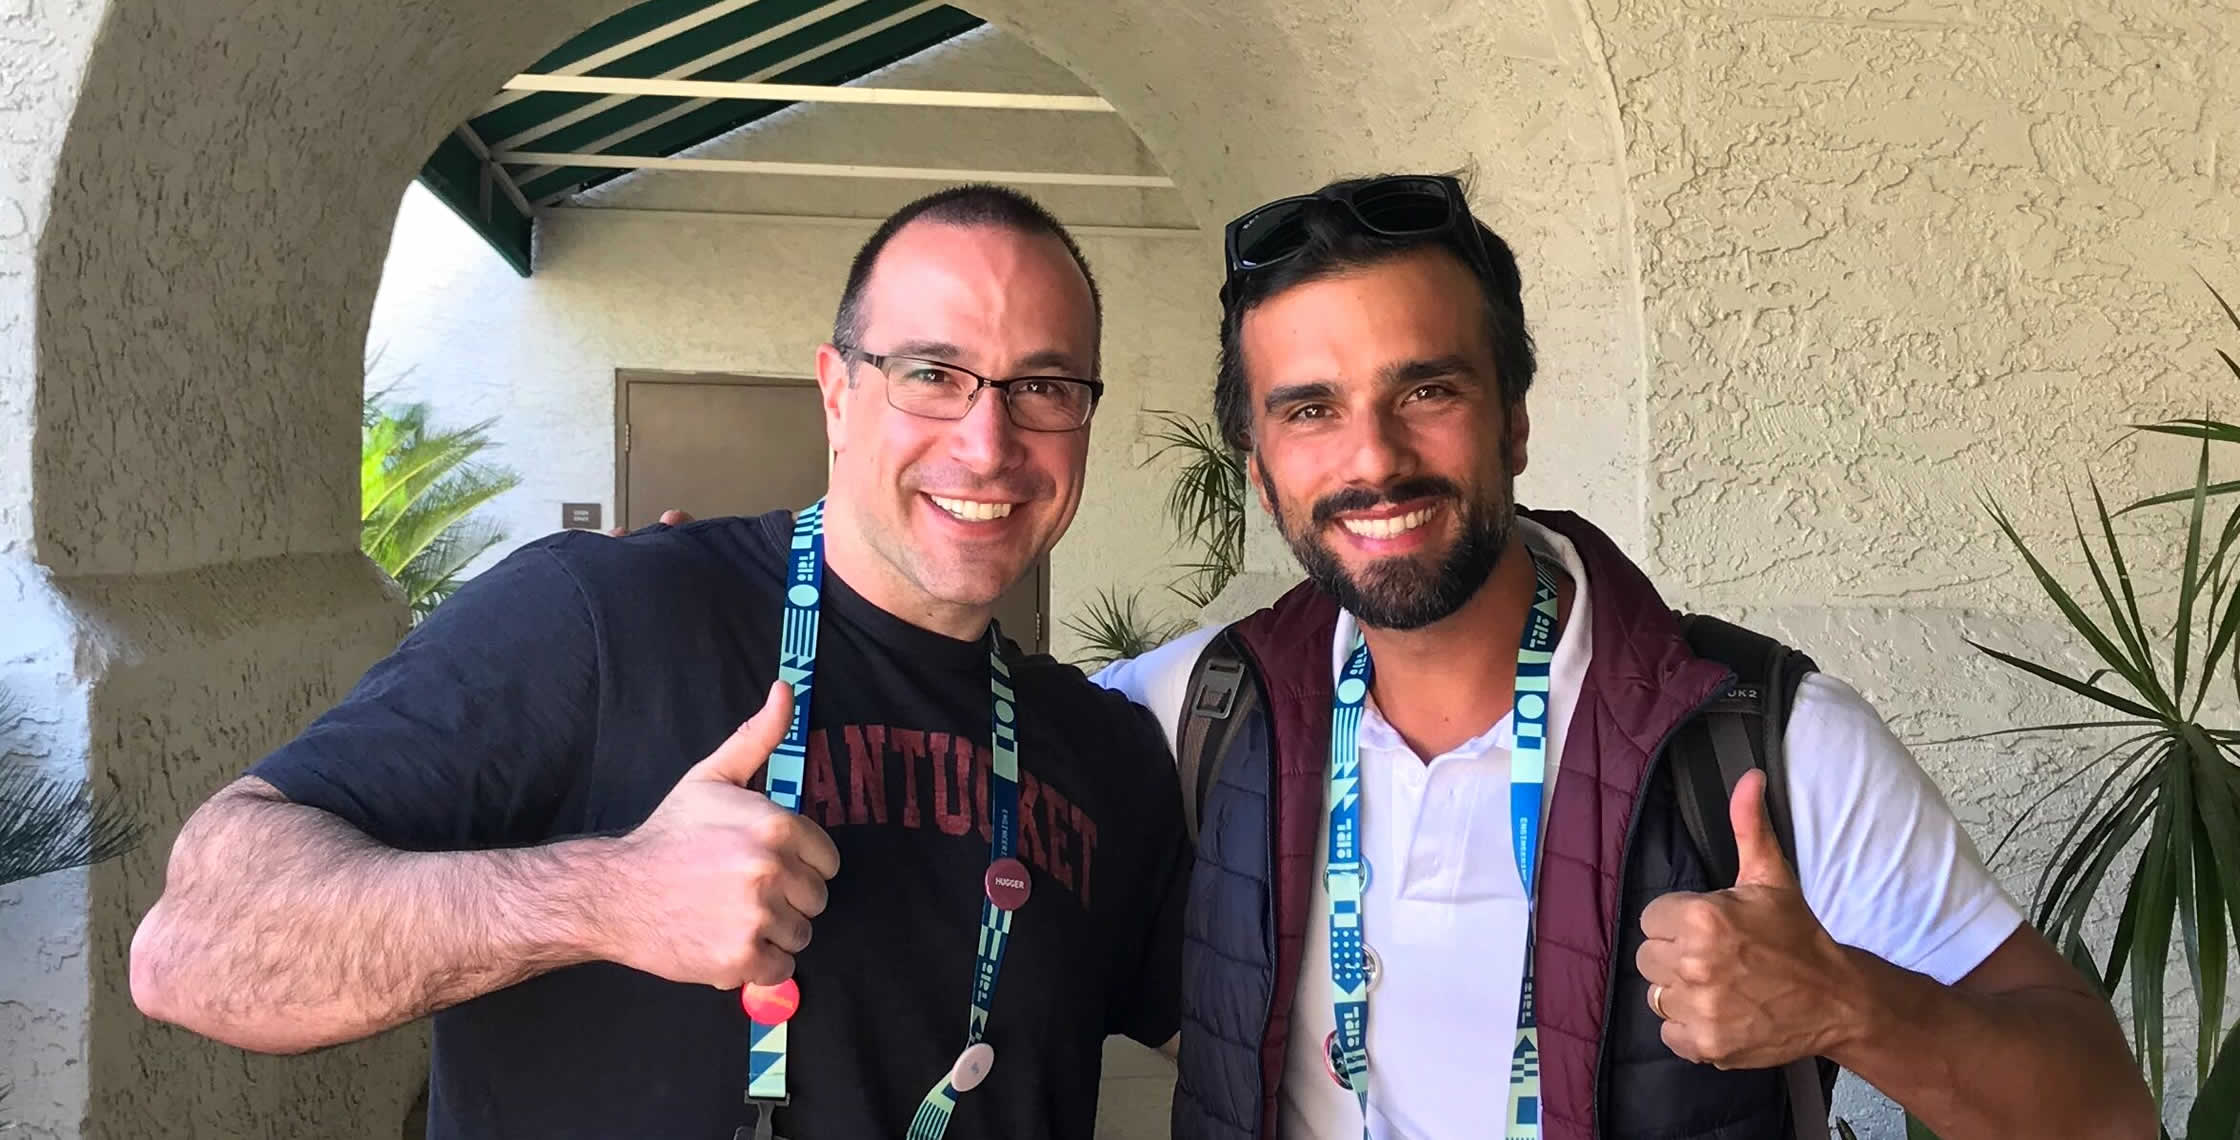 Ben Nadel at InVision In Real Life (IRL) 2019 (Phoenix, AZ) with: Bernardo Sana